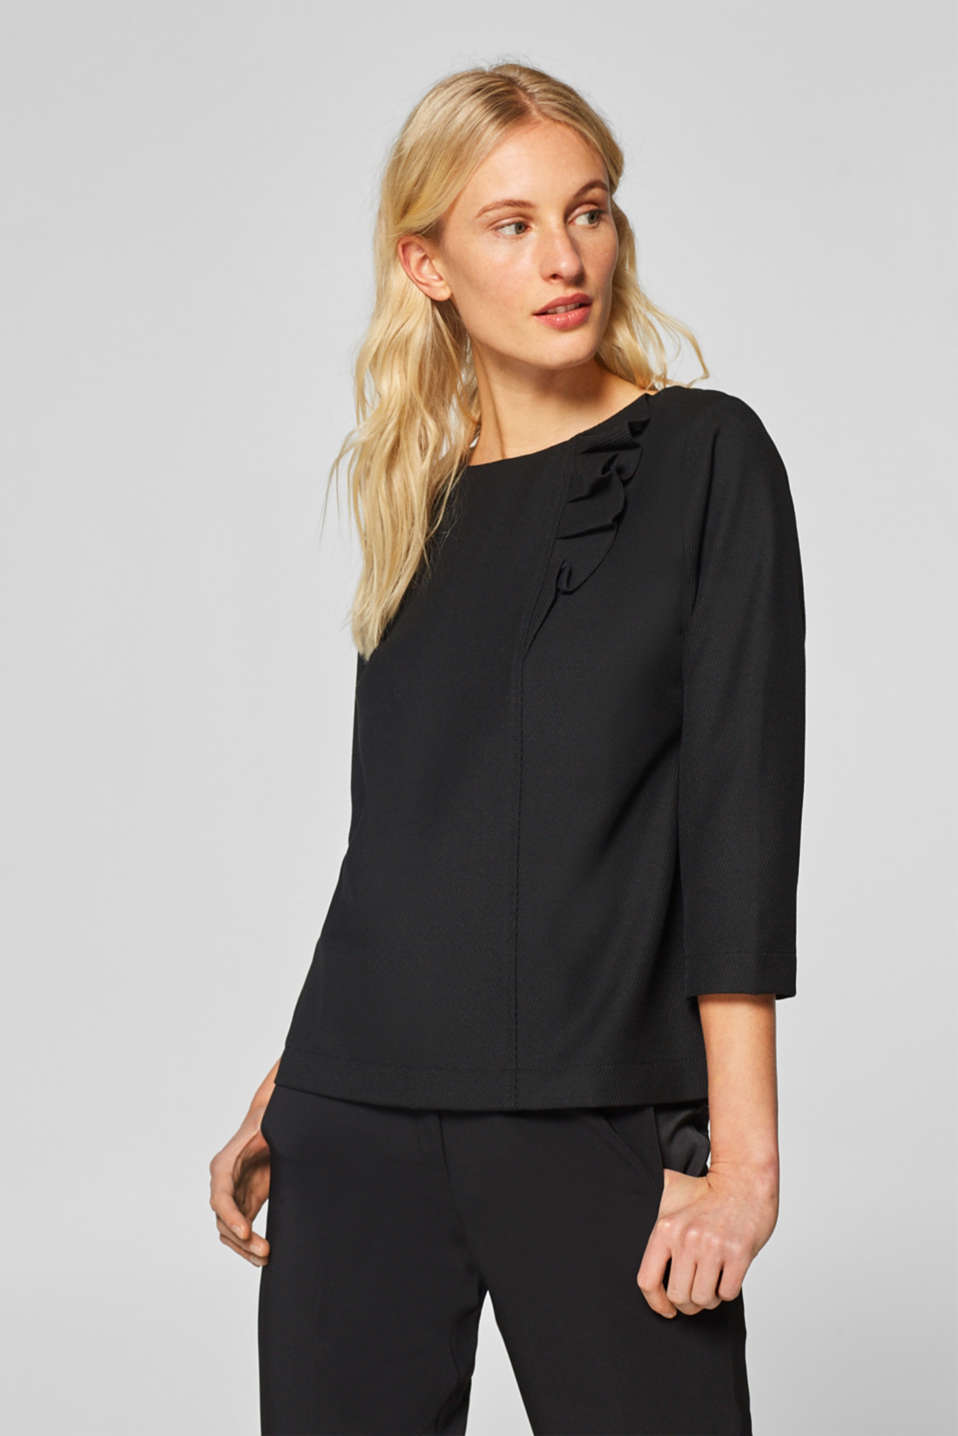 Esprit - Stretchy ribbed texture top with frill details